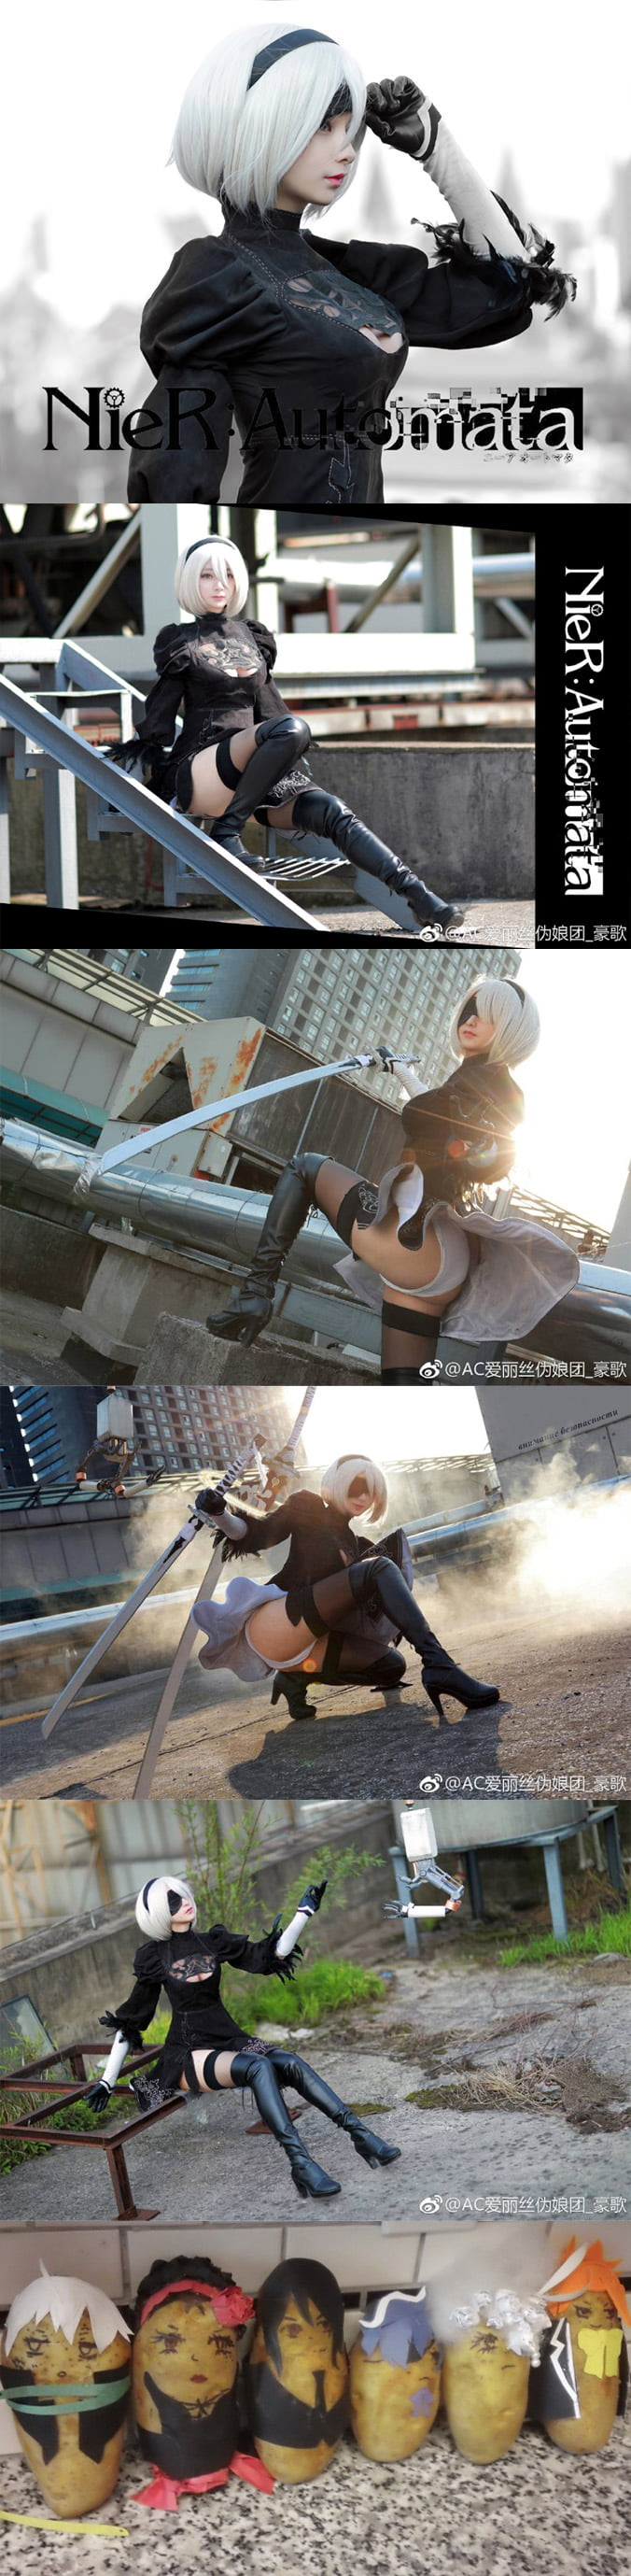 When a guy can cosplay better than most girls (haoge cosplay)